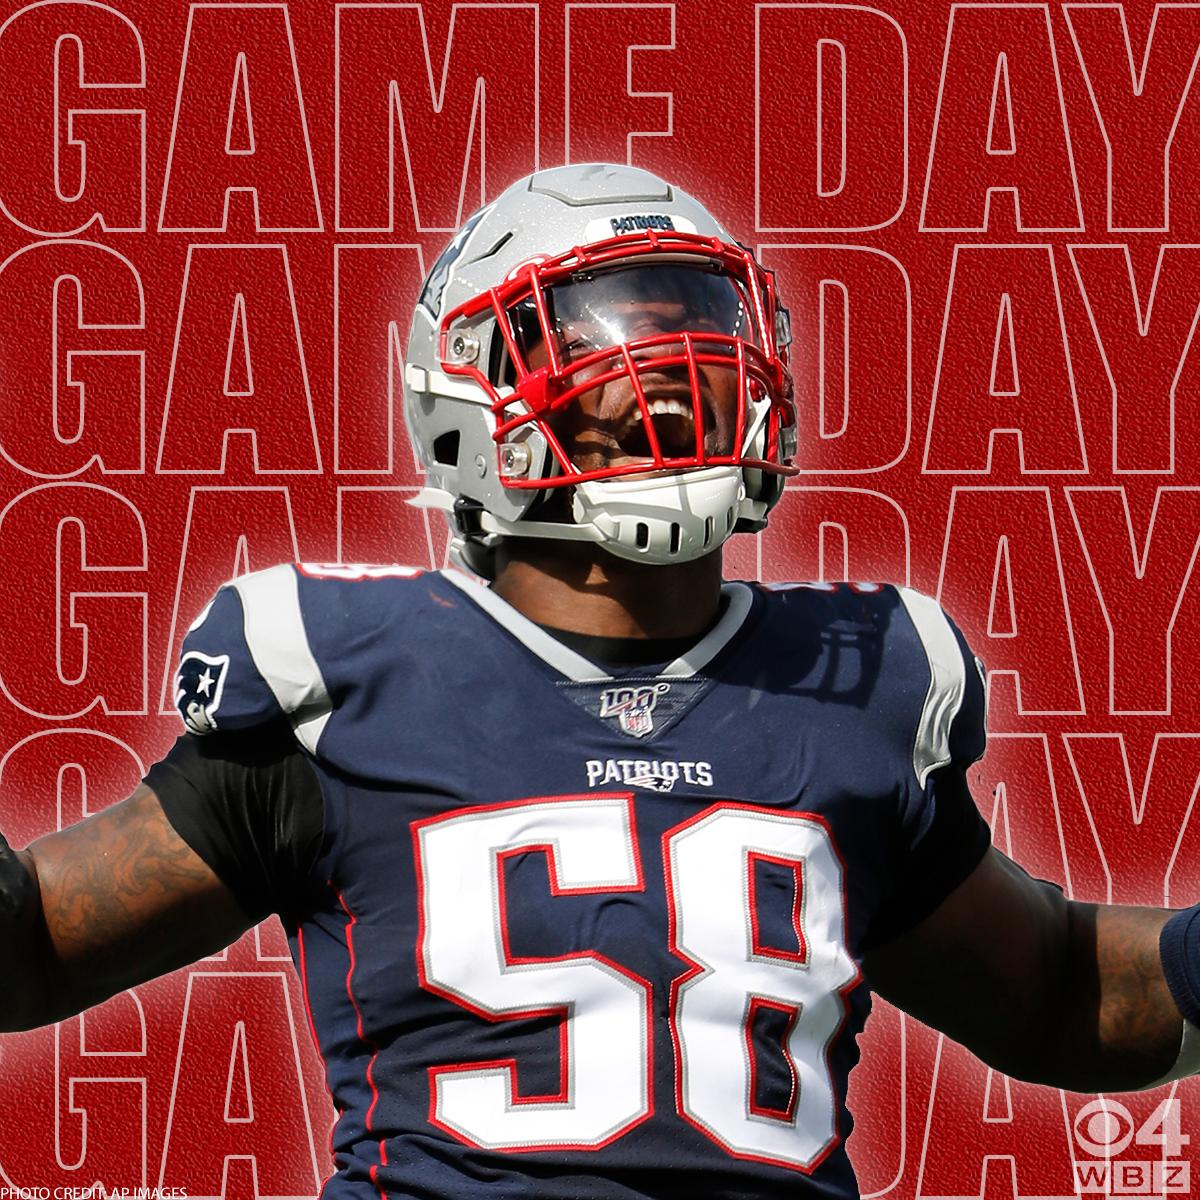 GAME DAY! @Patriots take on the @Giants in Foxboro for Thursday night football. Get ready for all the action on WBZ with Patriots Game Day starting at 7p then tune in after the game for Patriots 5th Quarter. #WBZ #Patriots